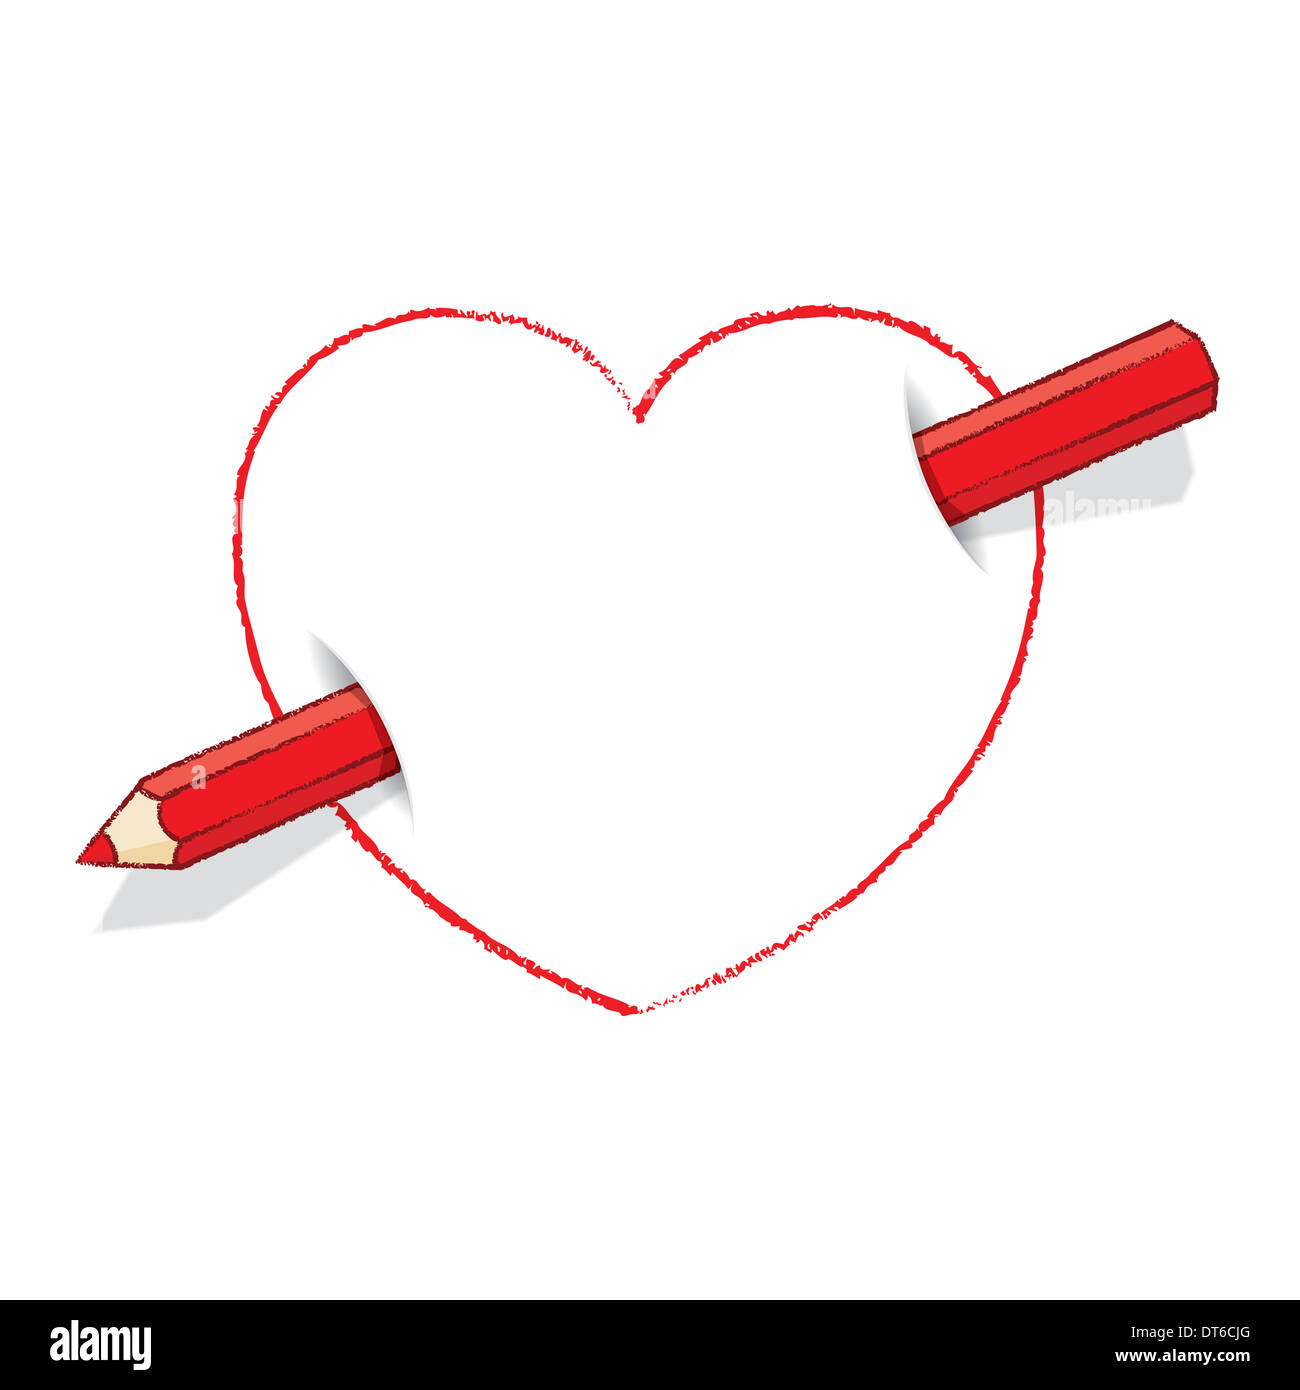 Diagonal red pencil piercing empty drawn love heart like an arrow diagonal red pencil piercing empty drawn love heart like an arrow ccuart Image collections